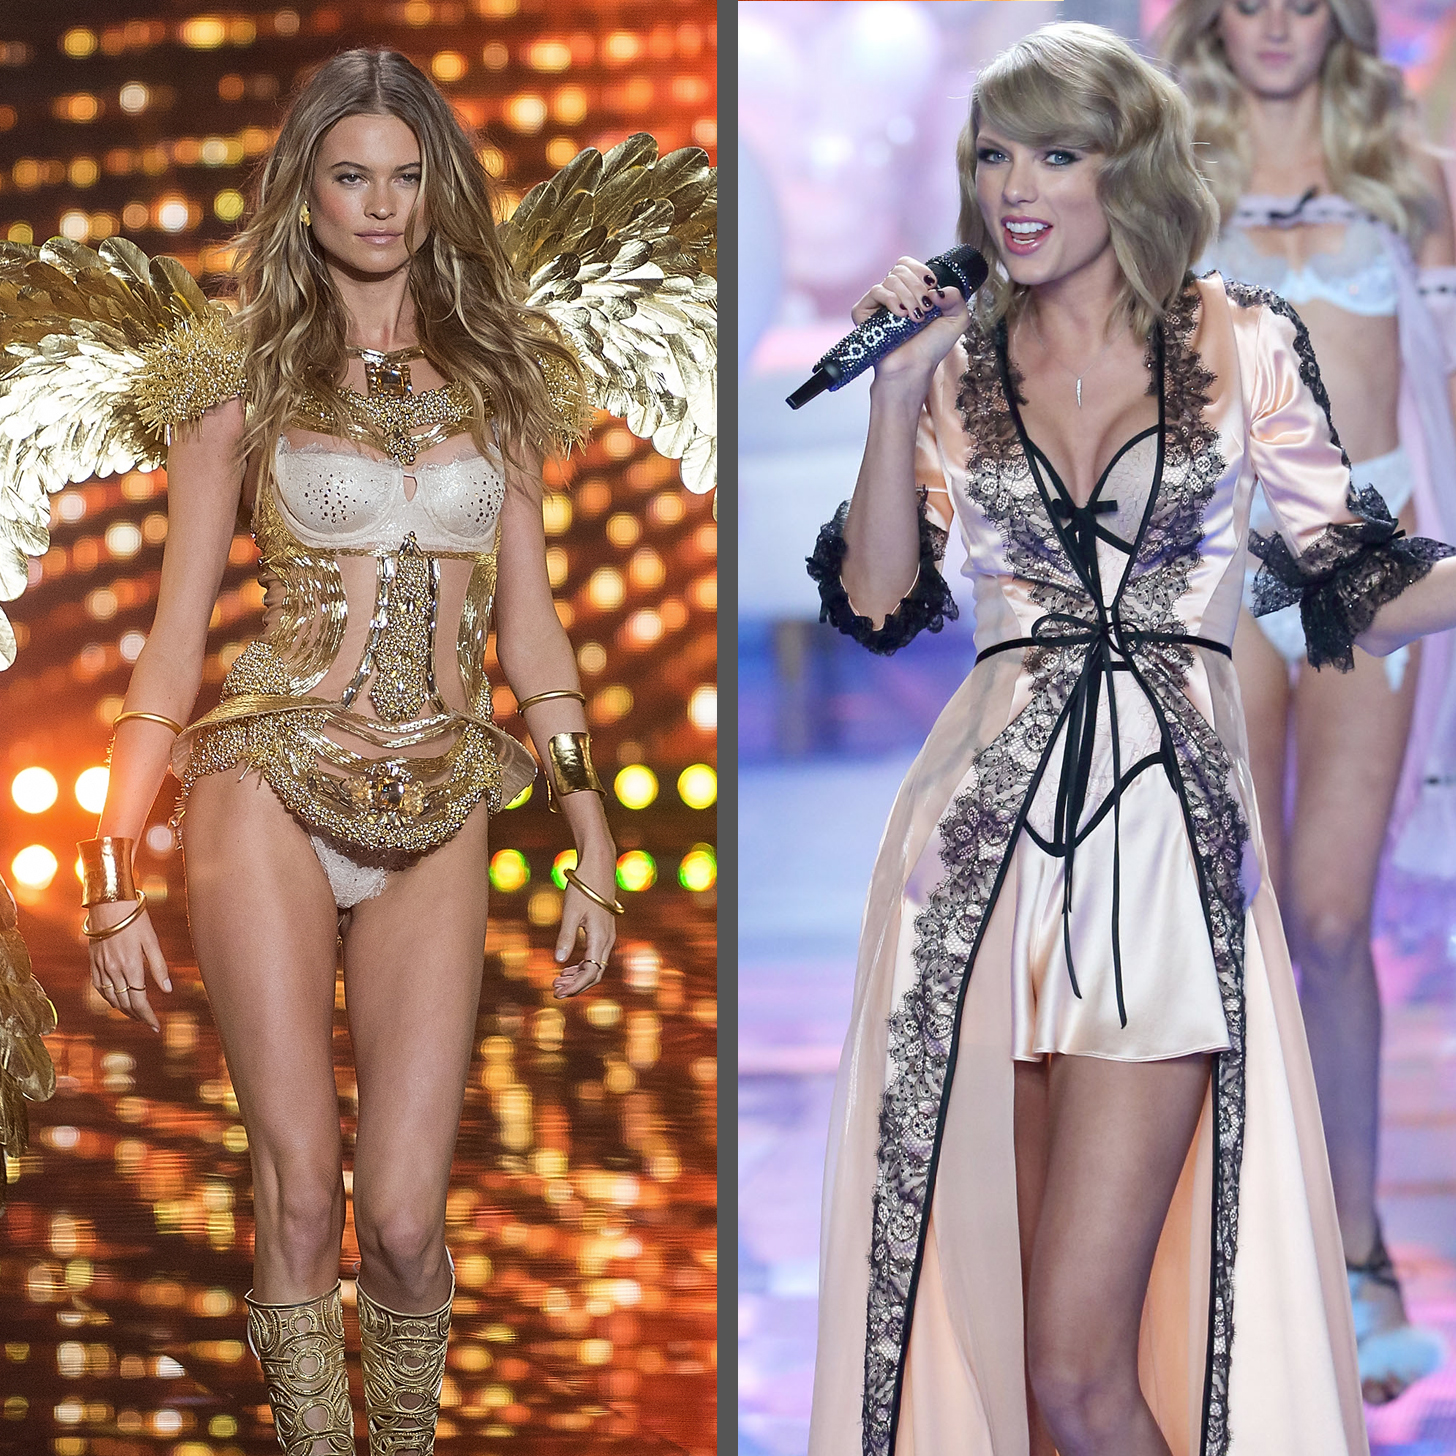 2014 Victoria's Secret Fashion Show Hd Share This Link